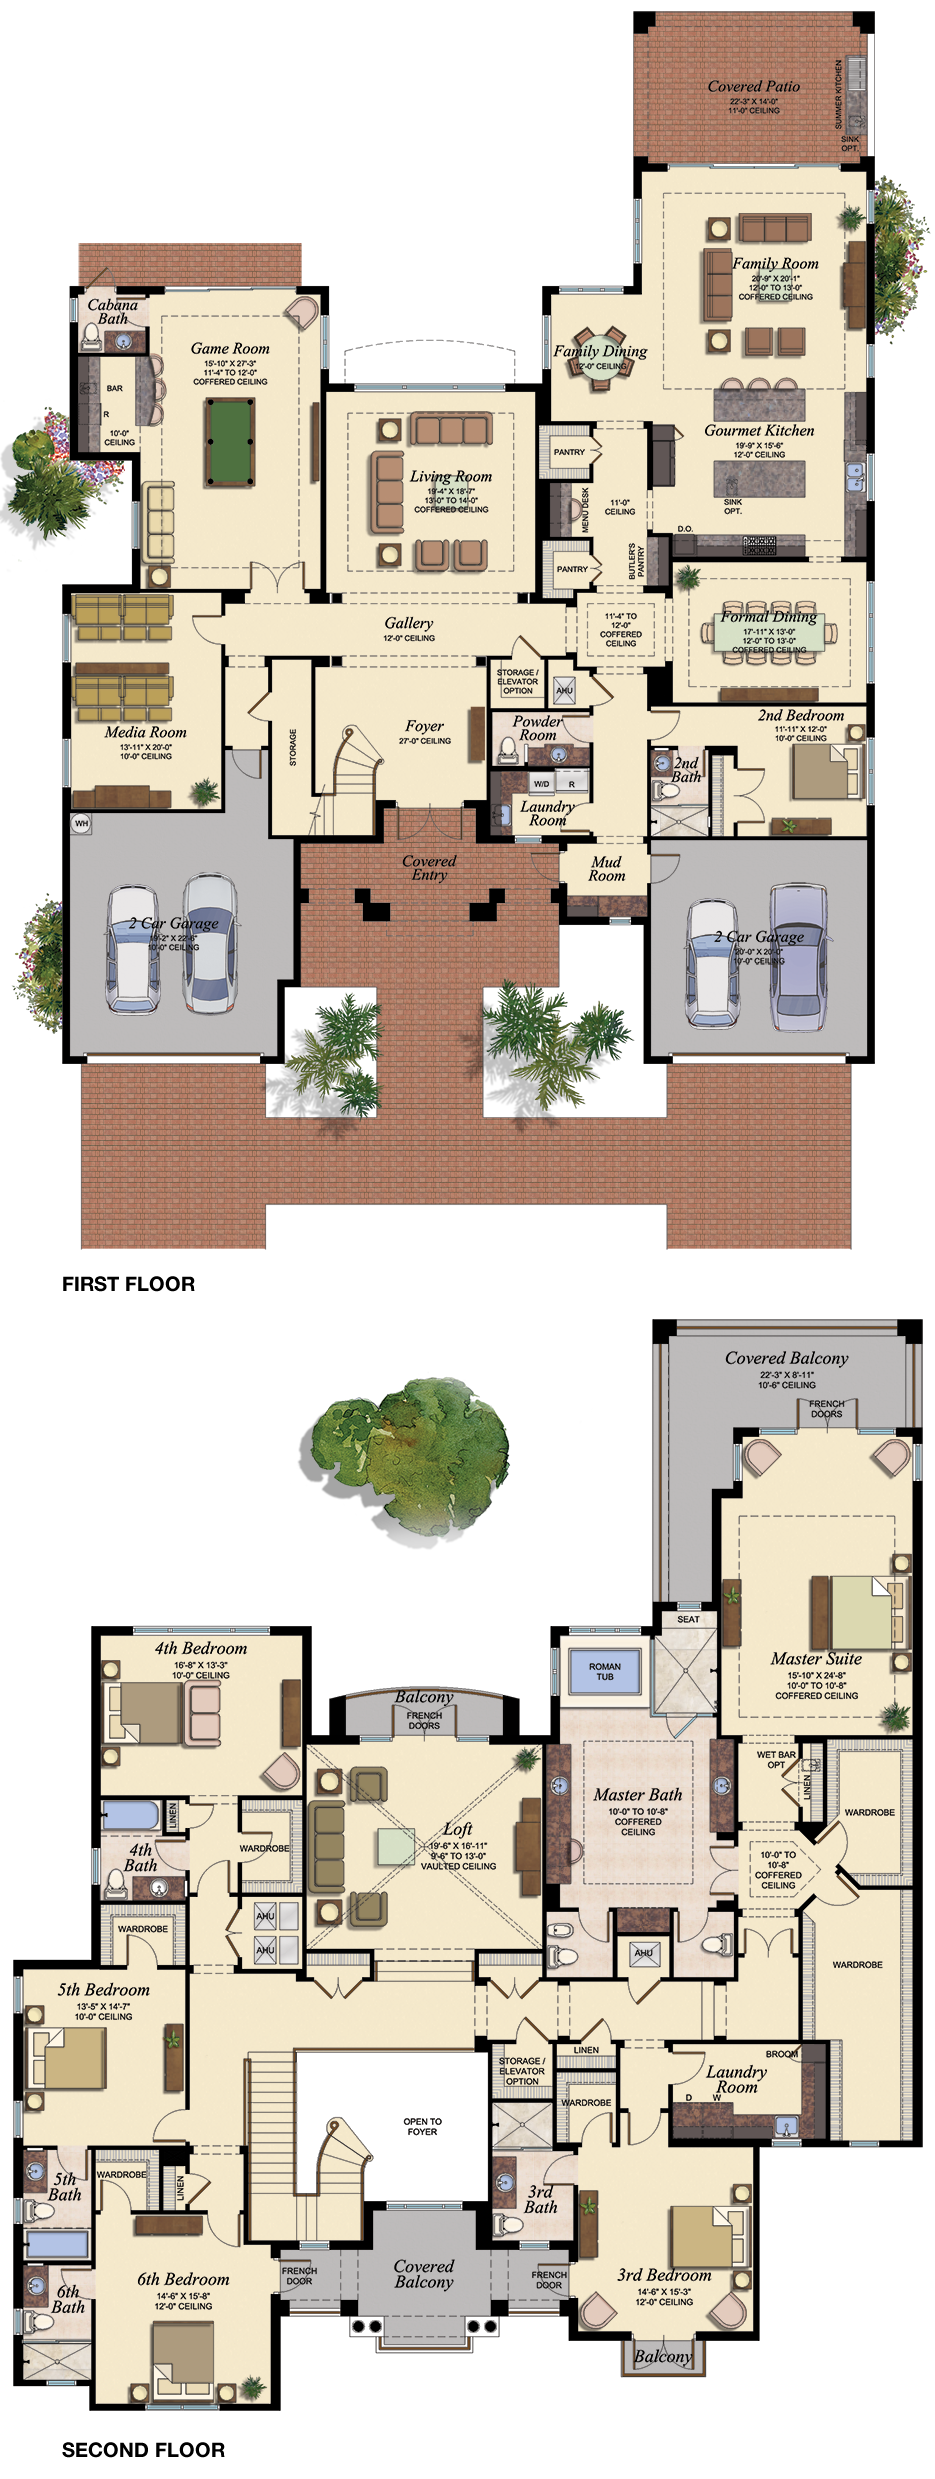 2 storey floor plan bed 2 as study garage as gym for Study bed plans